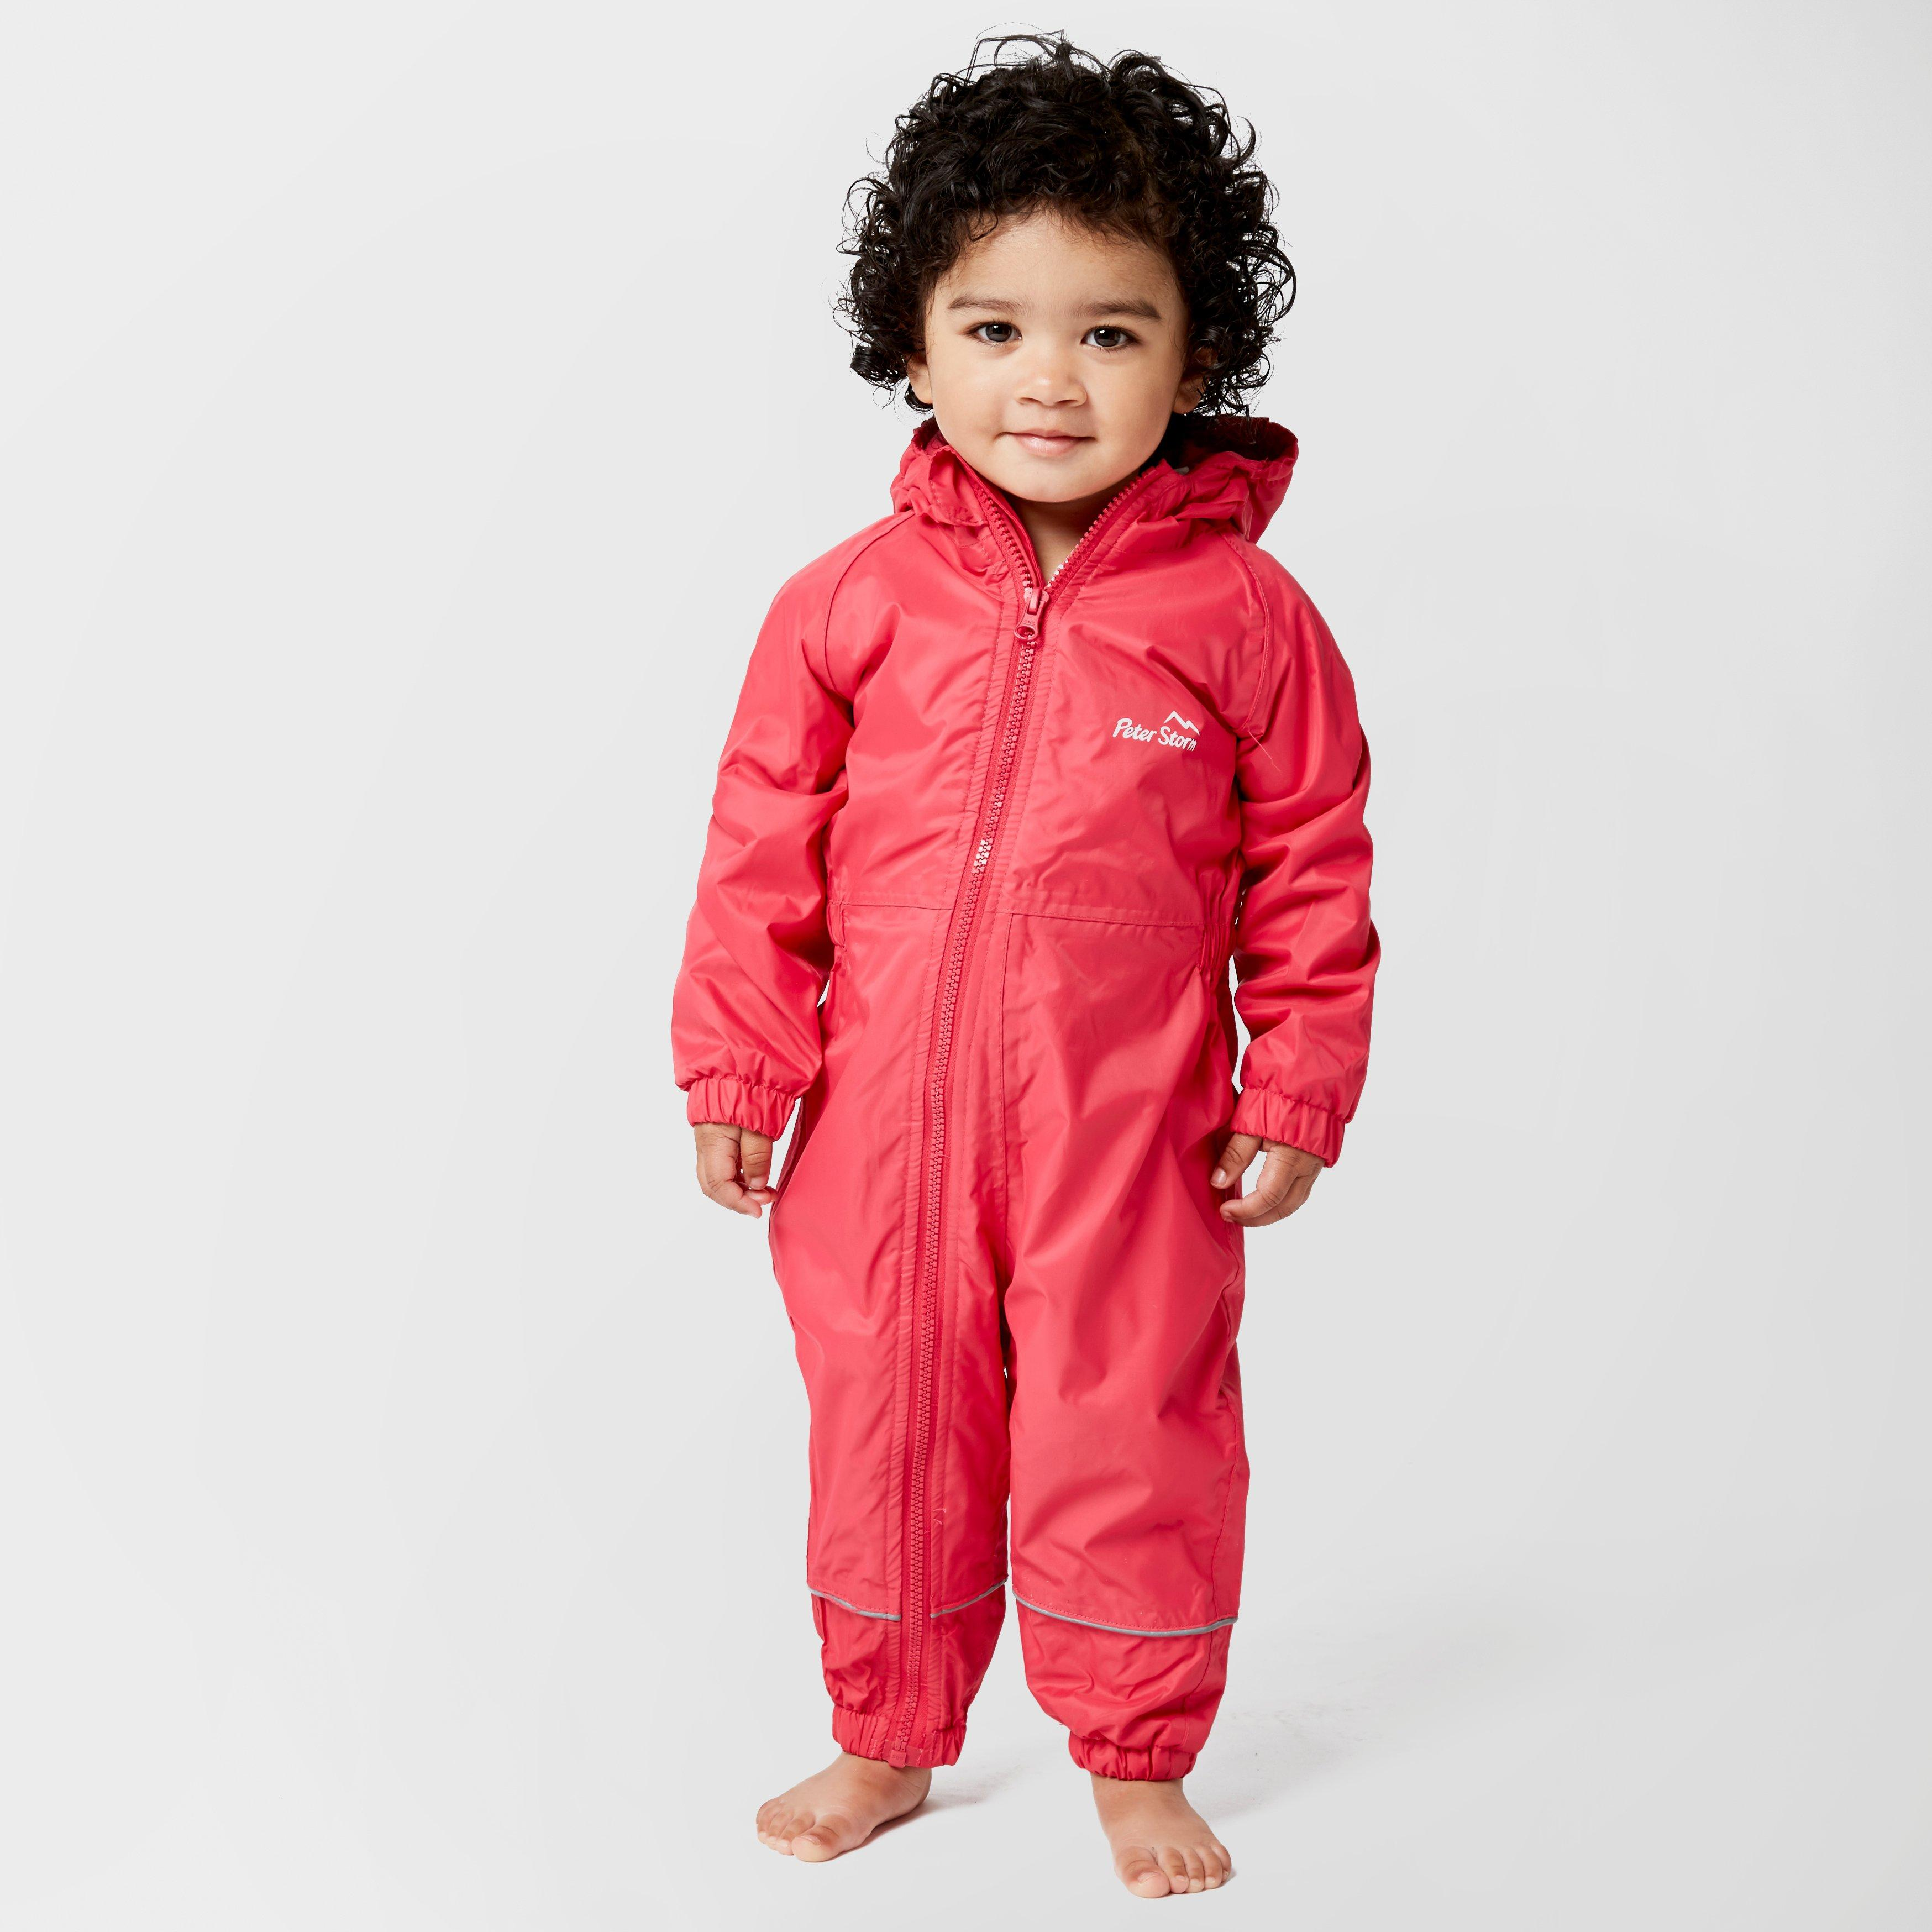 Image of Peter Storm Infants' Fleece Lined Waterproof Suit - Pink/Mpi, Pink/MPI